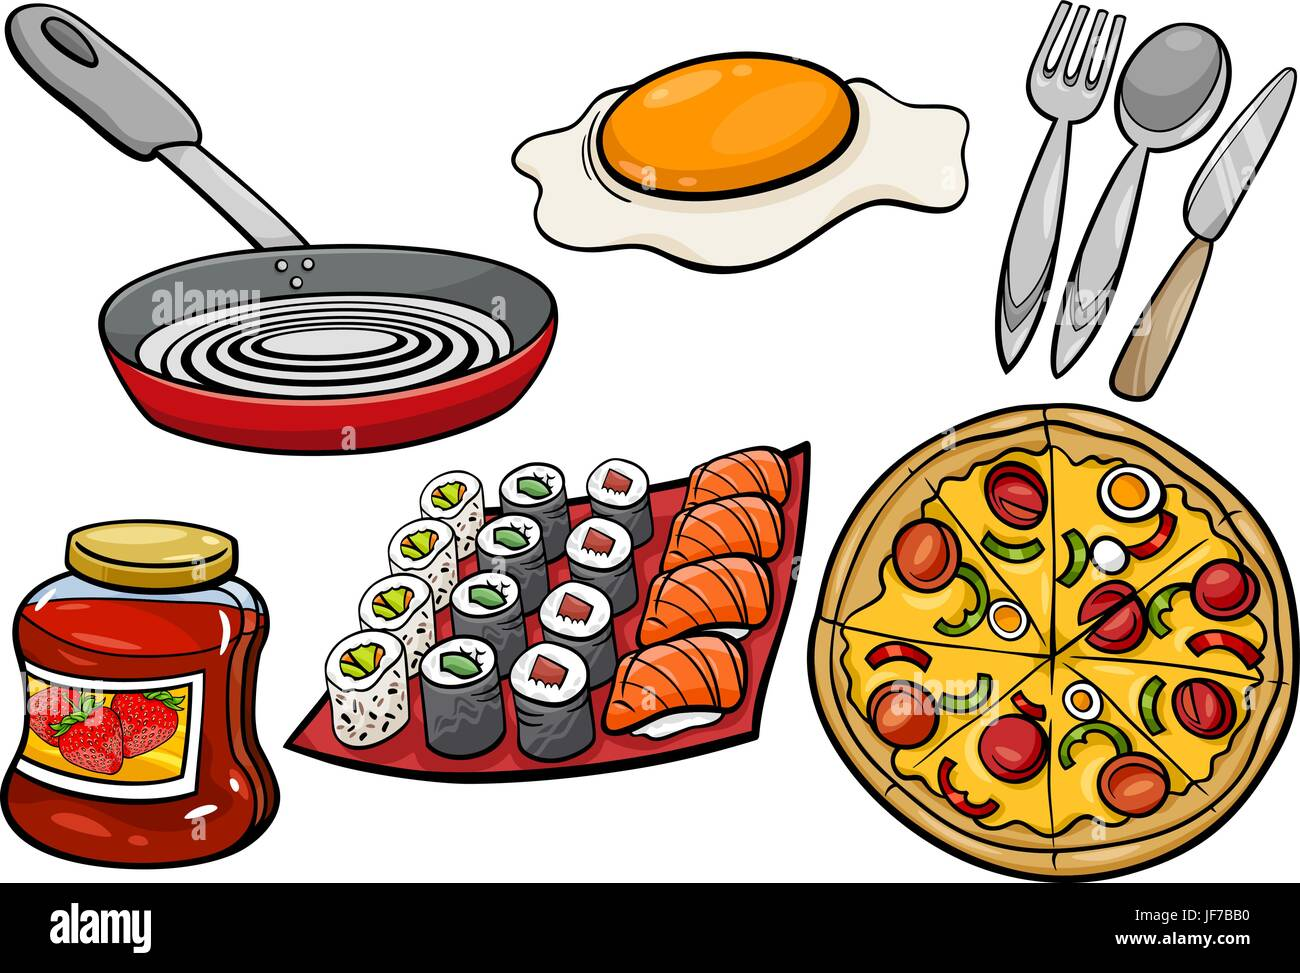 kitchen and food objects cartoon set - Stock Vector